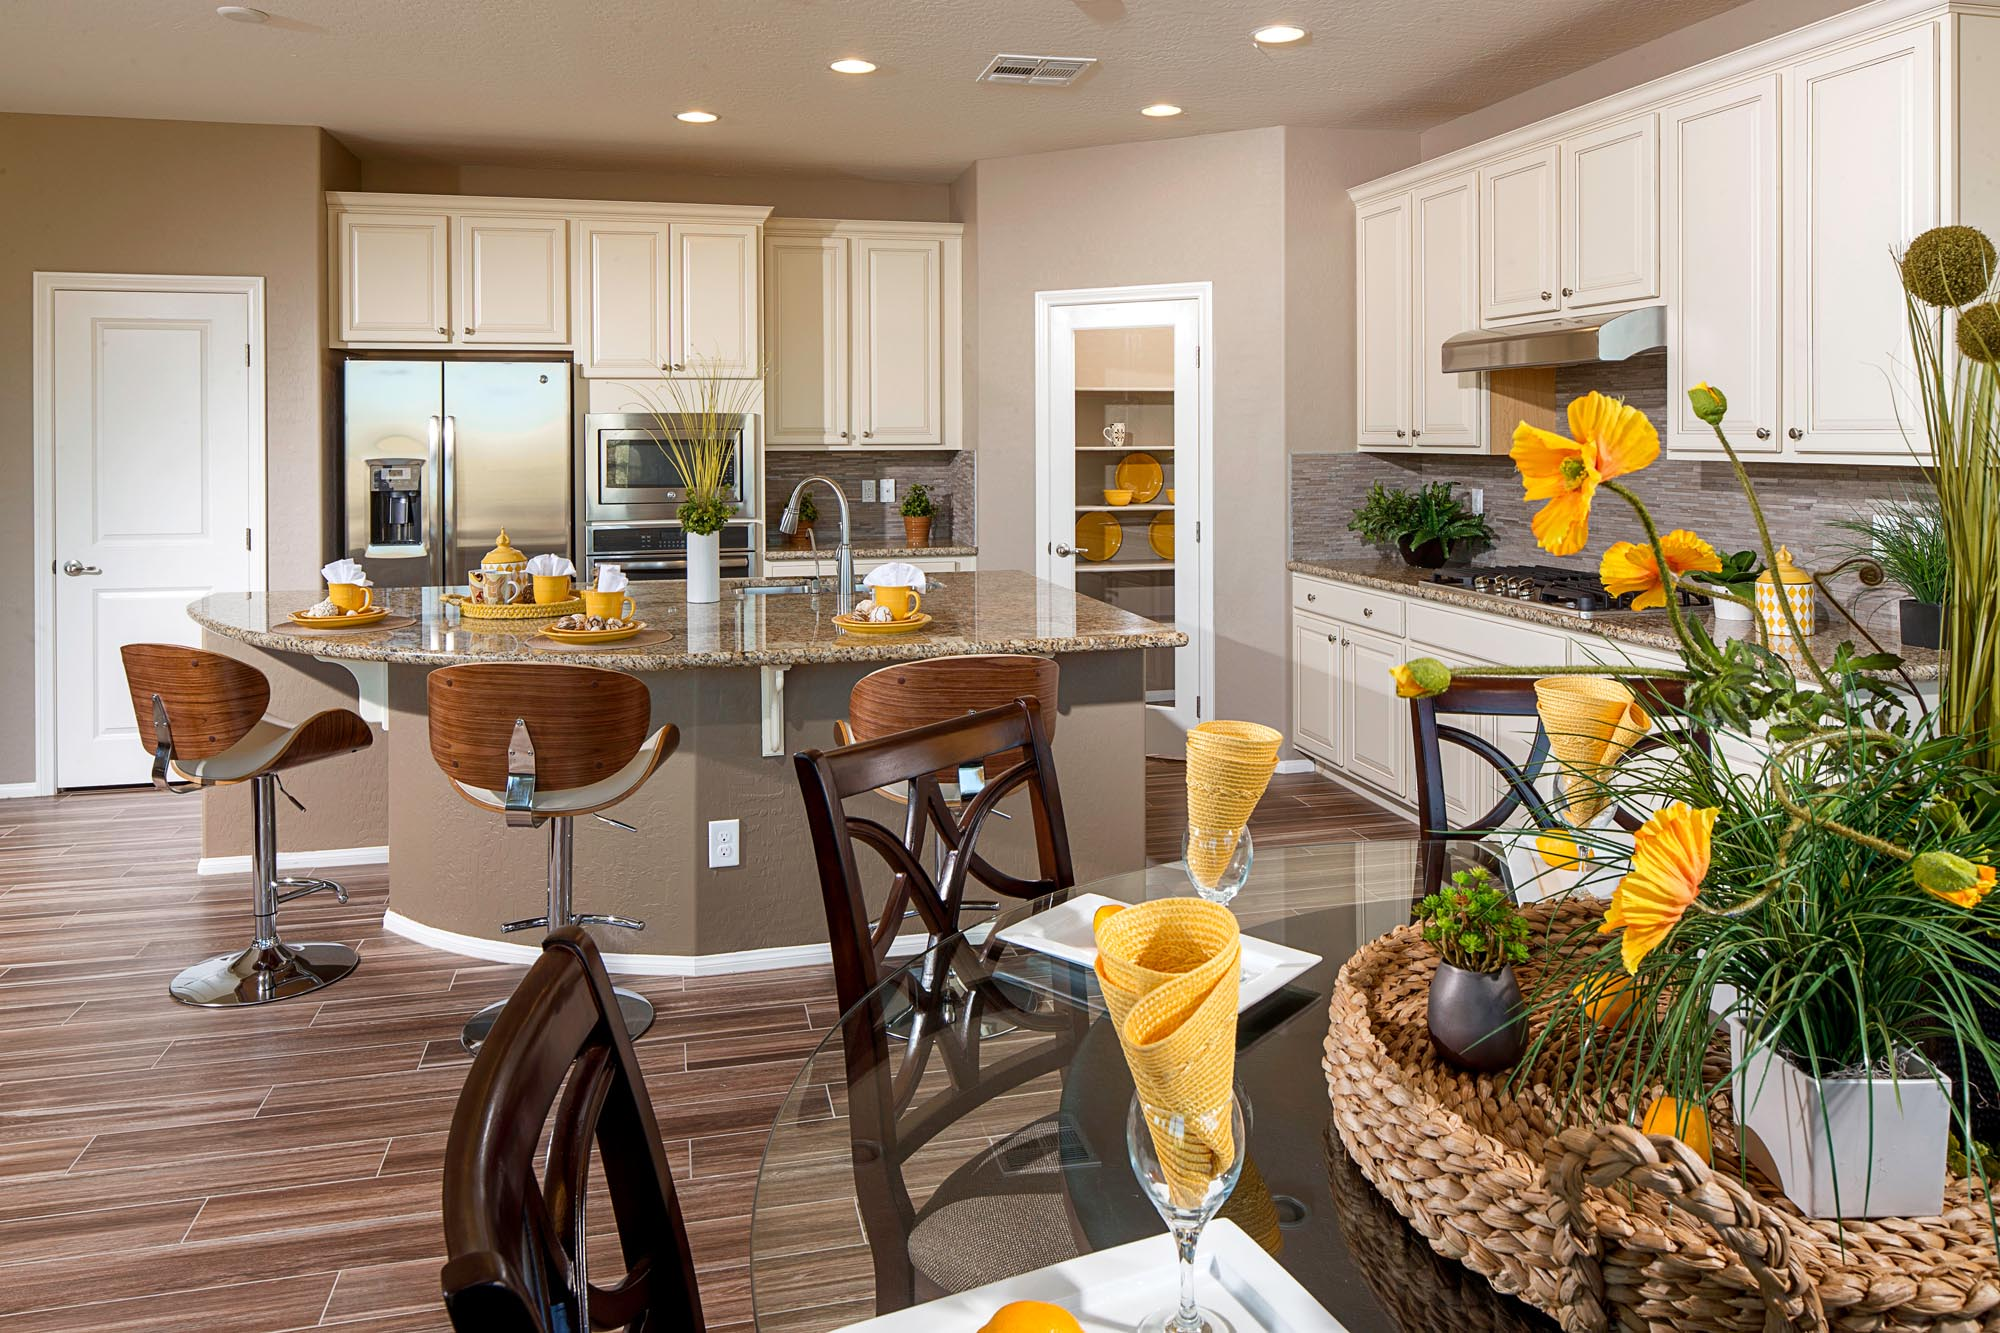 architectural photography model homes